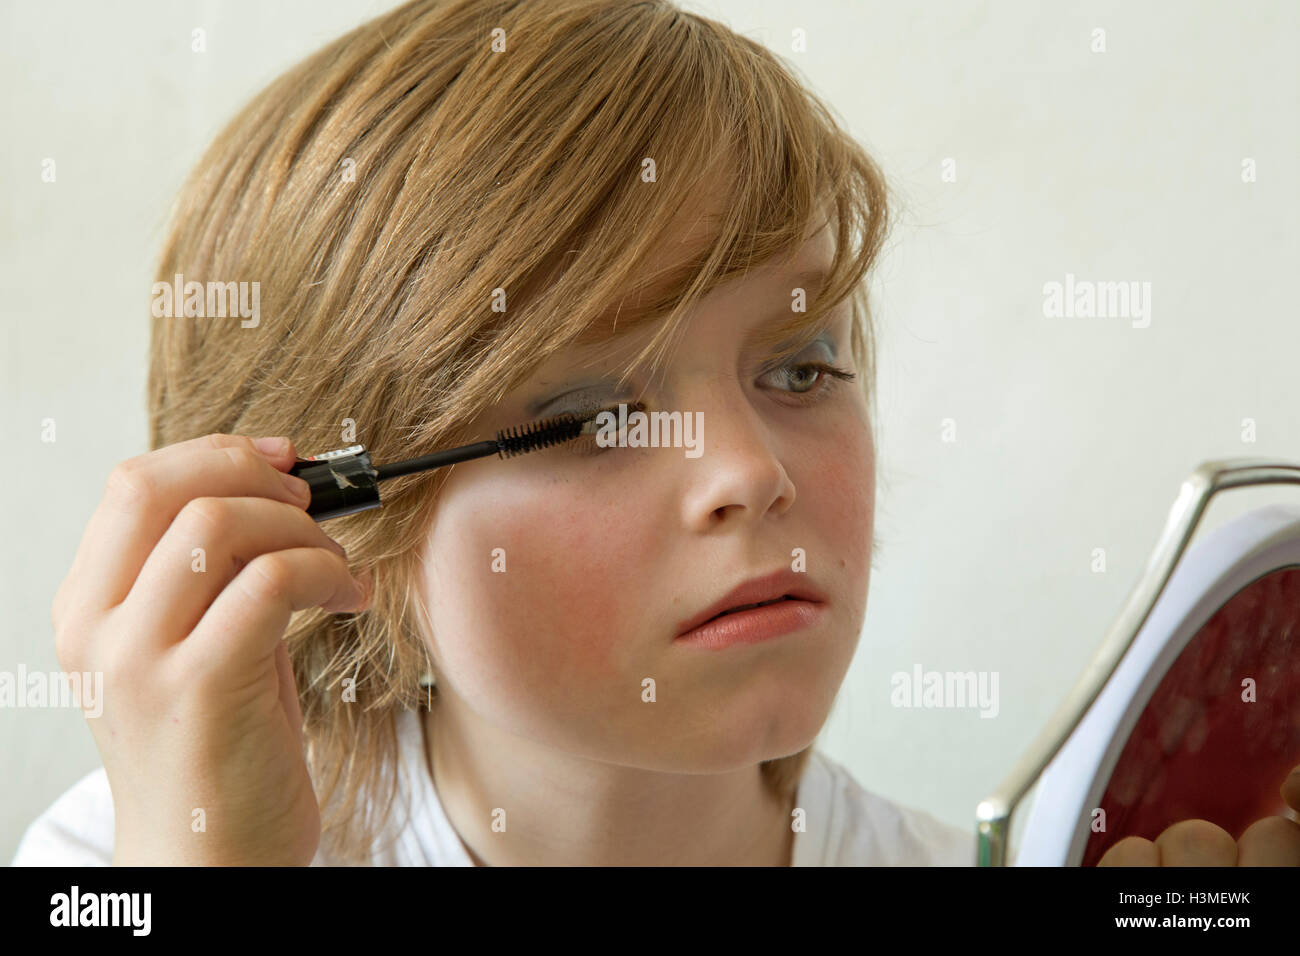 Young Boy Putting Makeup On Pretending To Be A Girl Stock Photo Royalty Free Image 122767279 ...